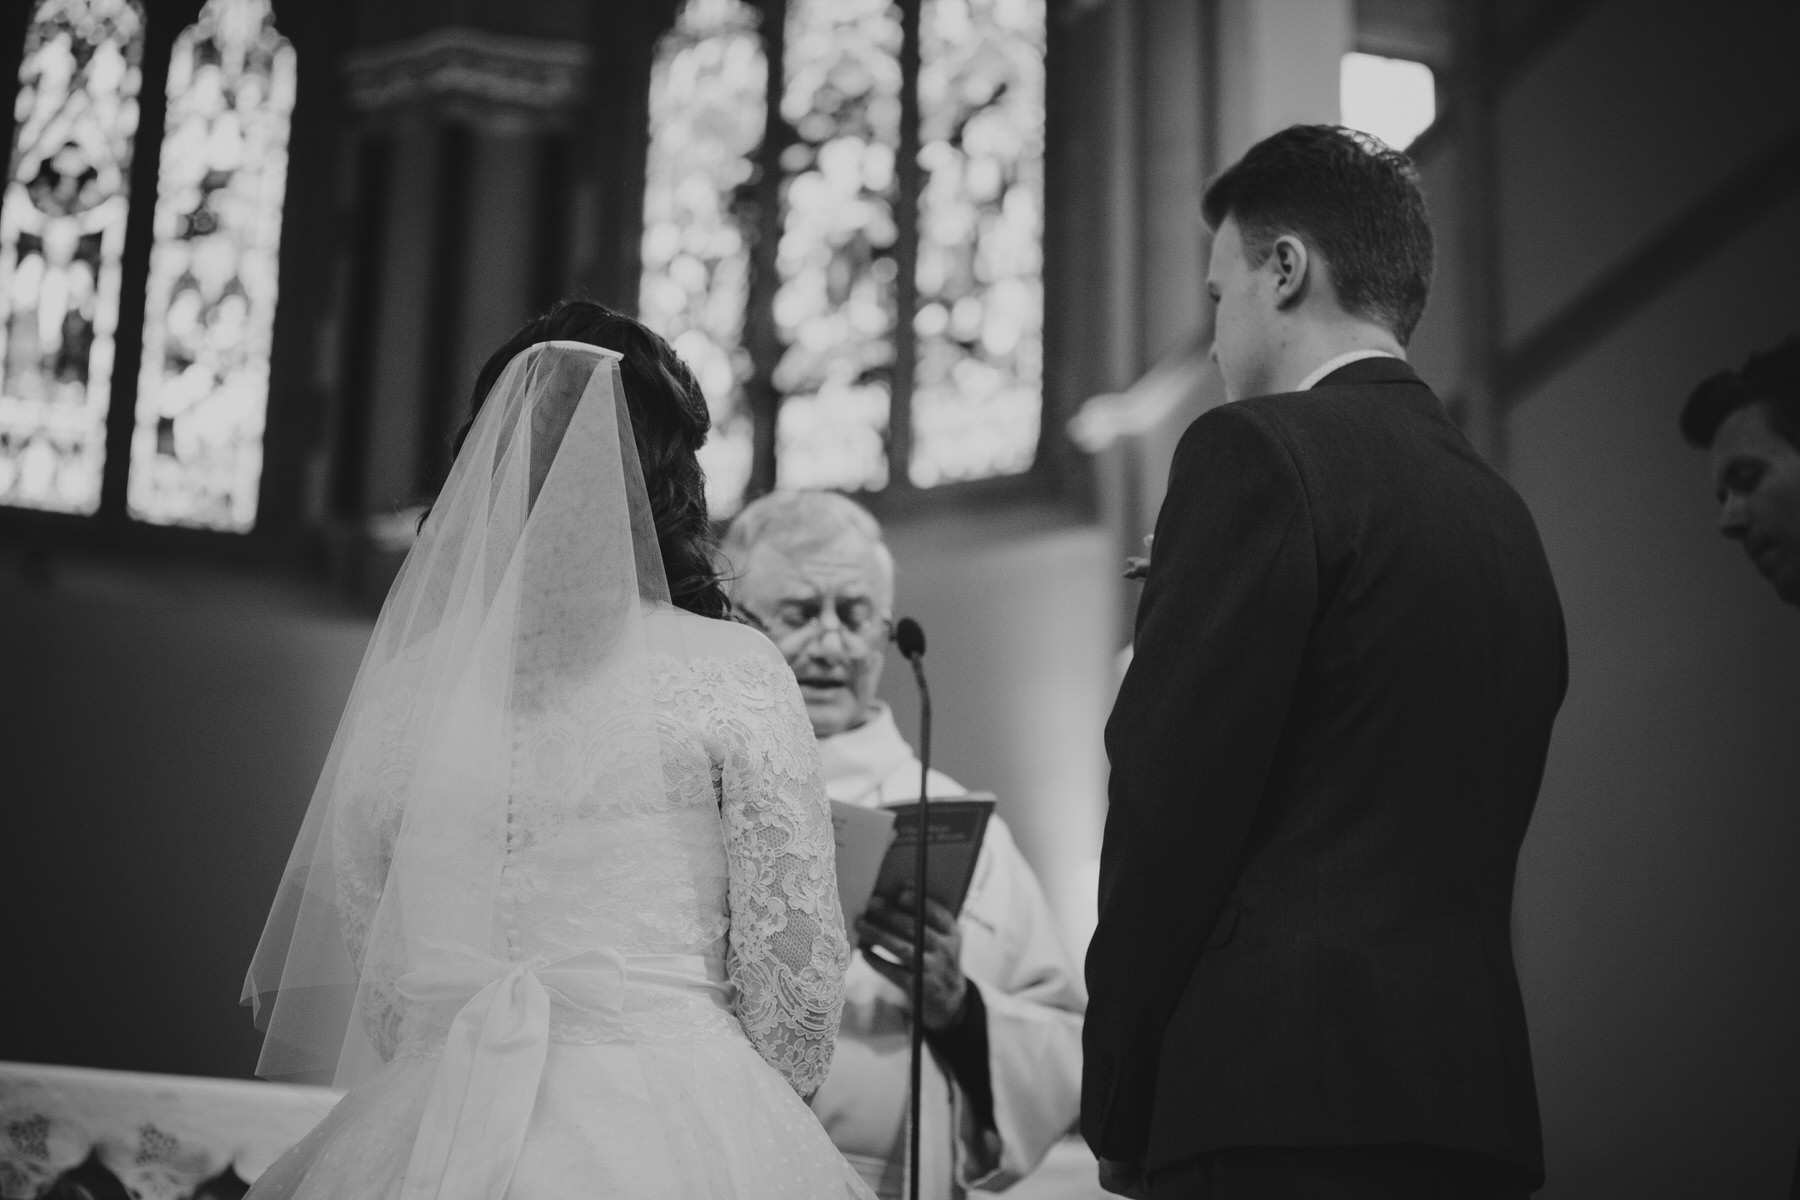 45 bride groom black white photo Fulham Catholic Church wedding.jpg